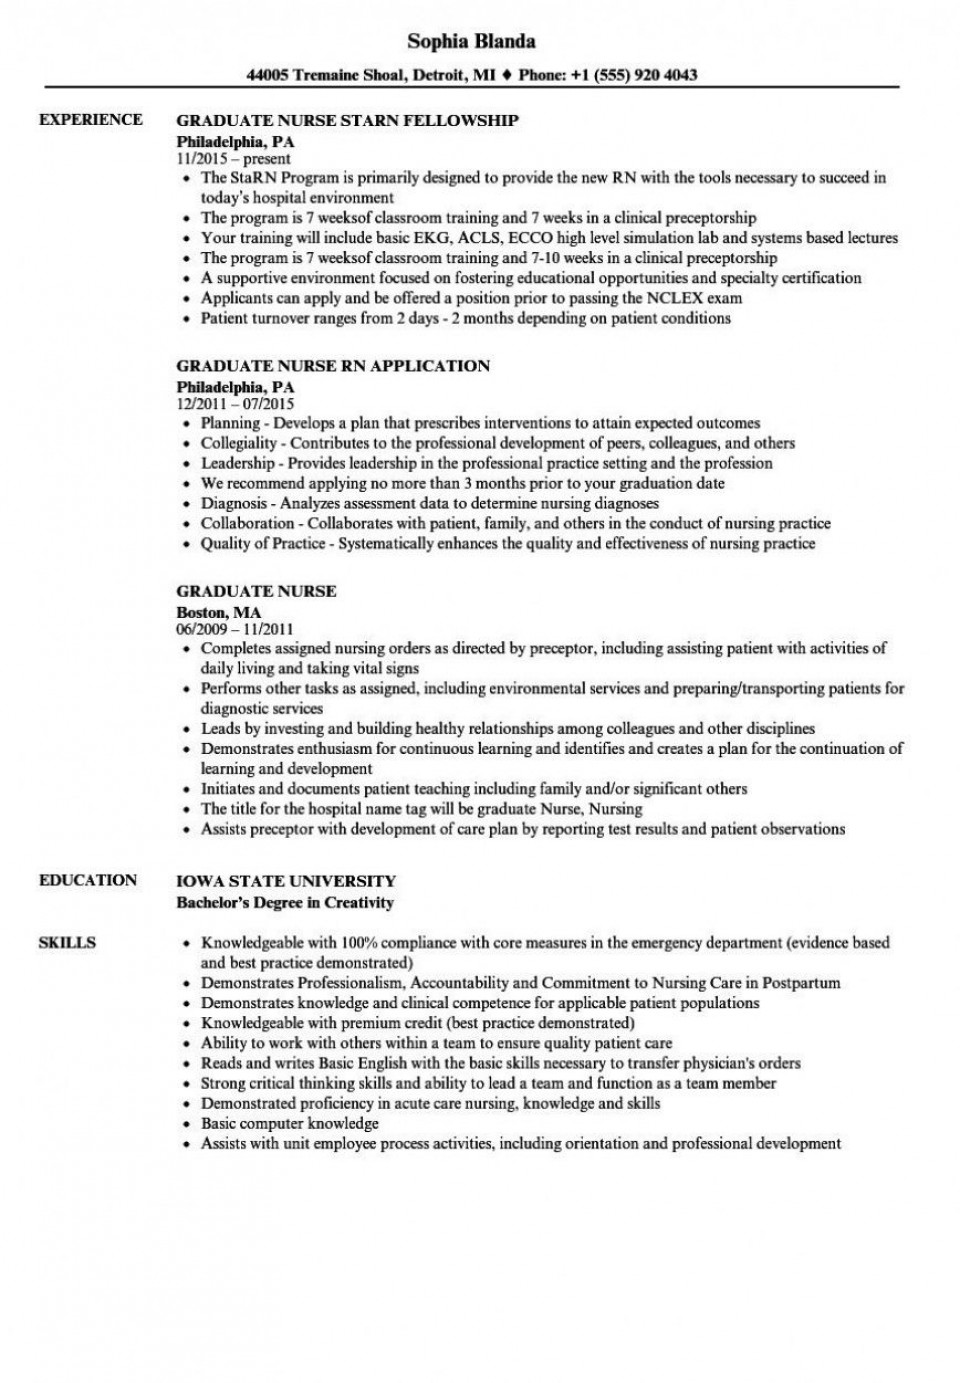 000 Impressive New Grad Nursing Resume Template Example  Graduate Nurse Practitioner960